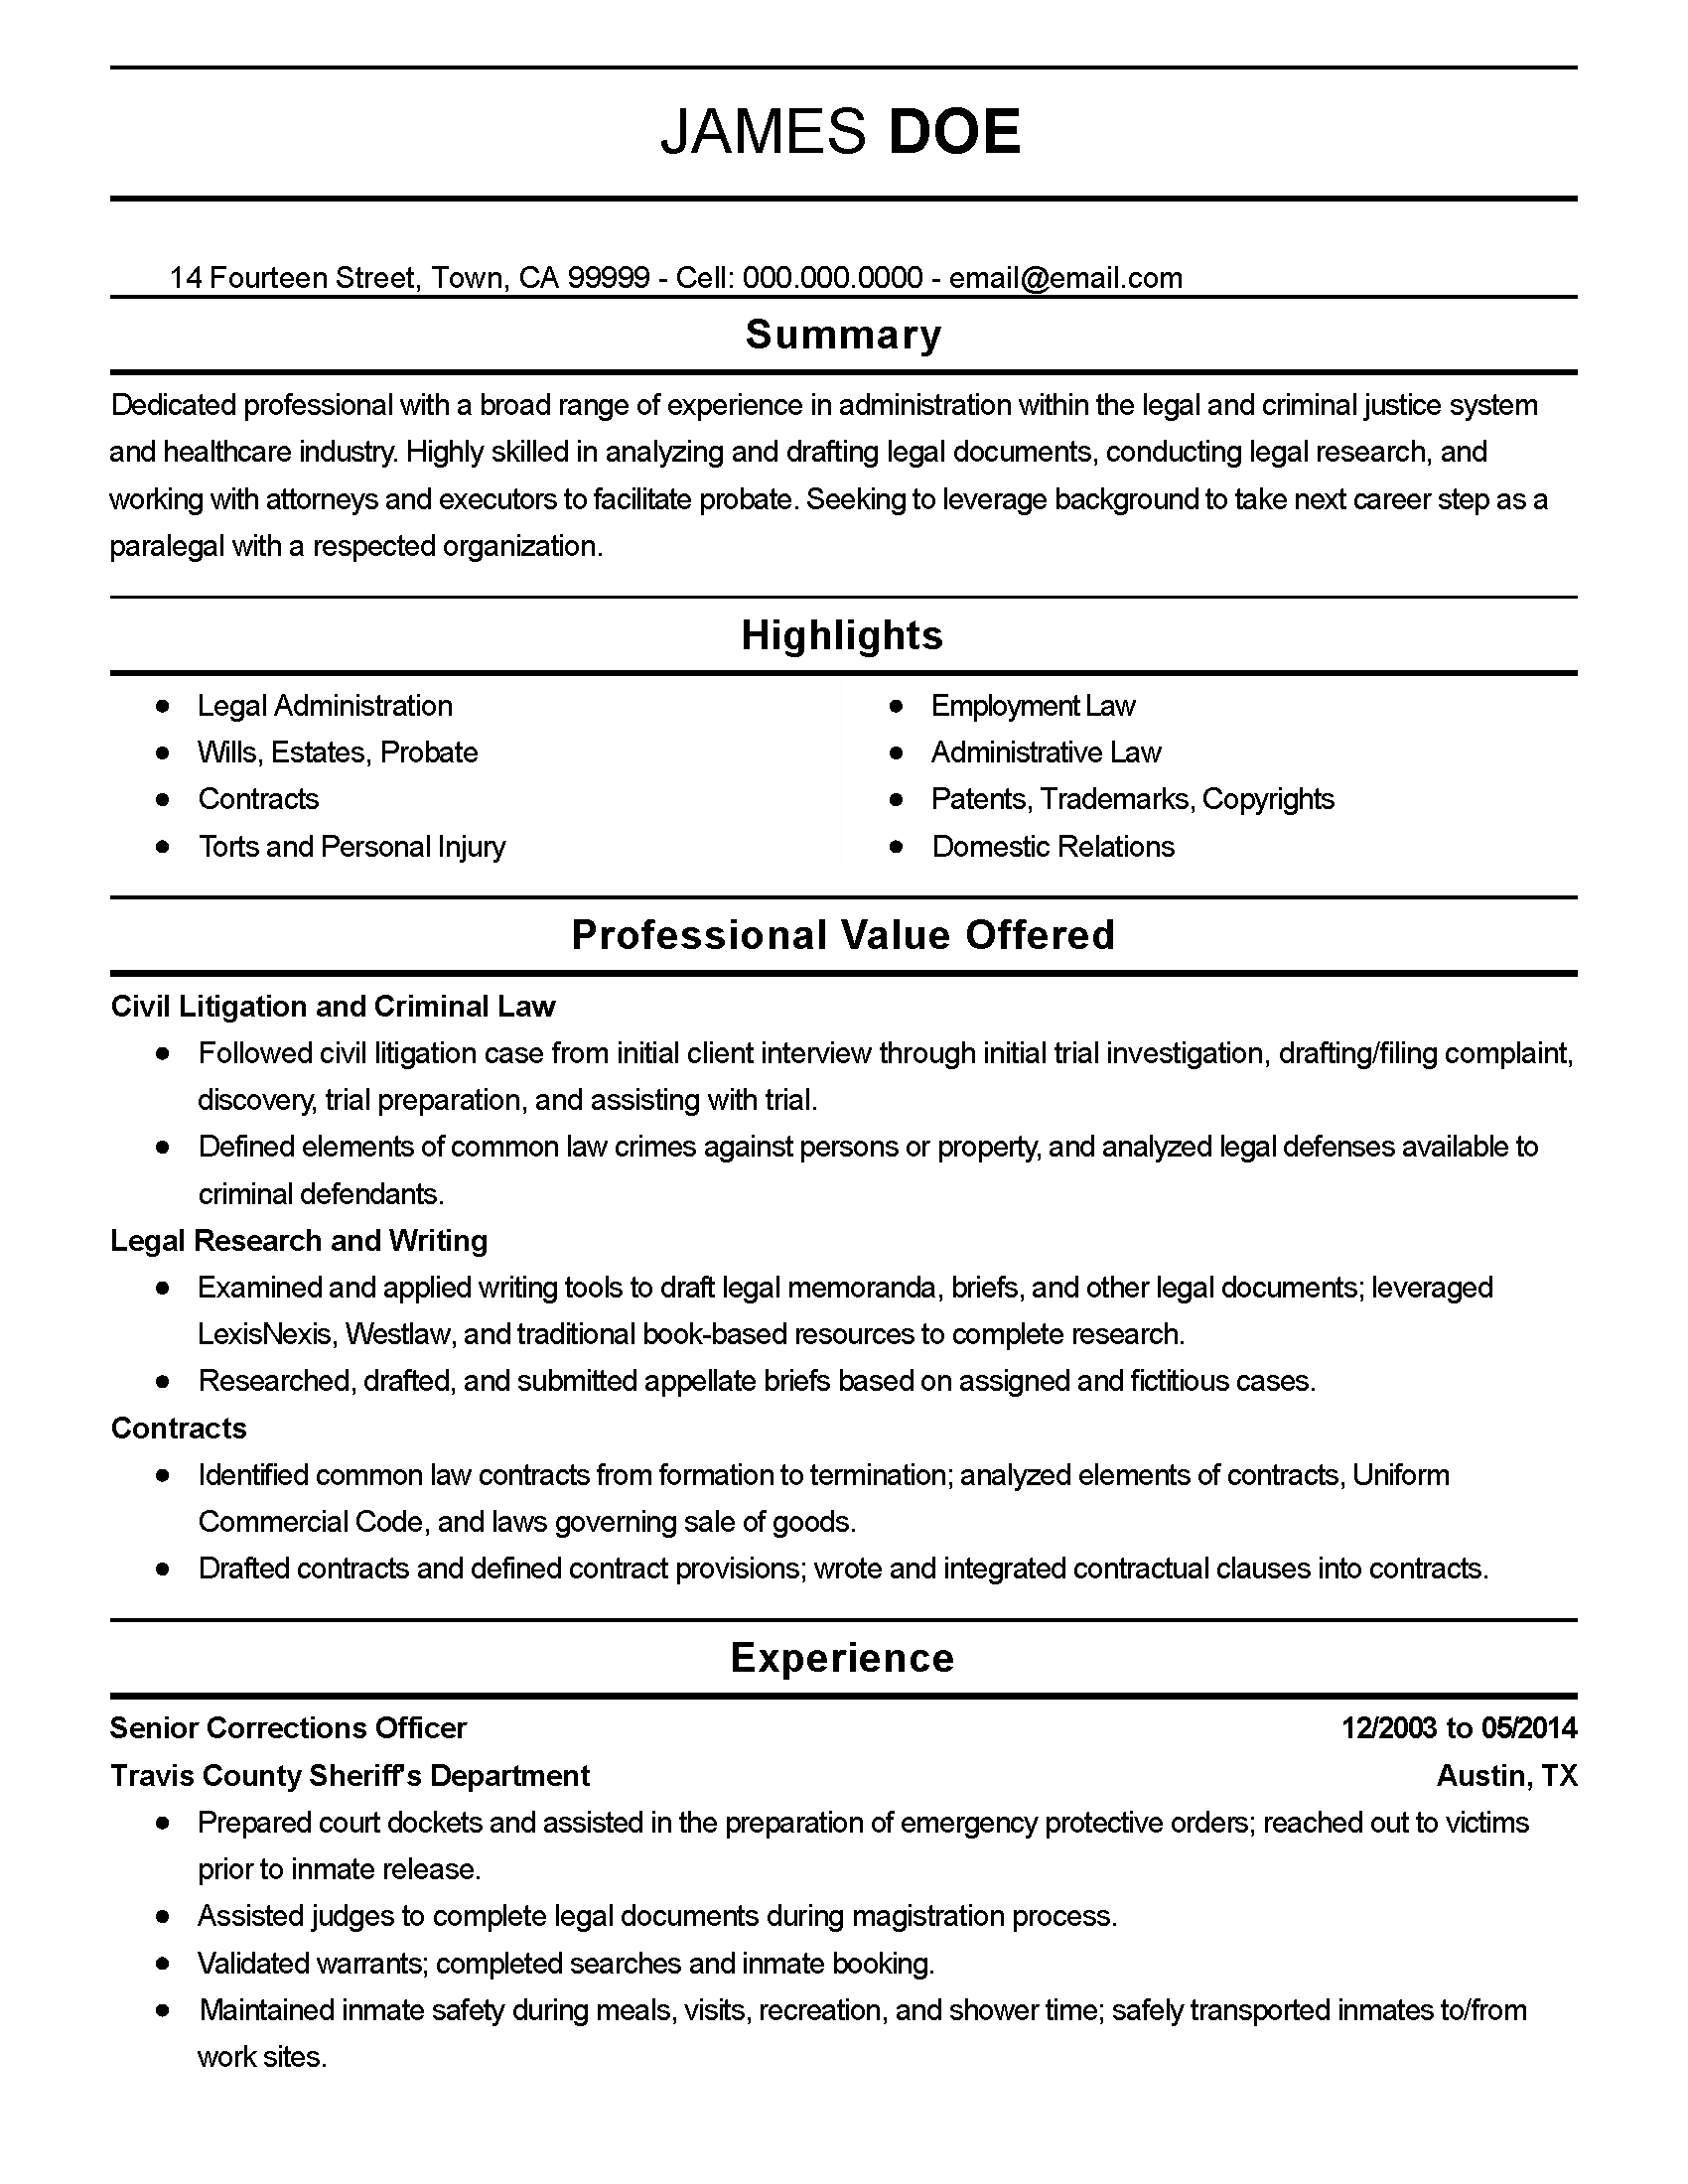 job description for correctional officer resume resume job description for correctional officer resume chief financial officer cfo job description resume glass quality manager